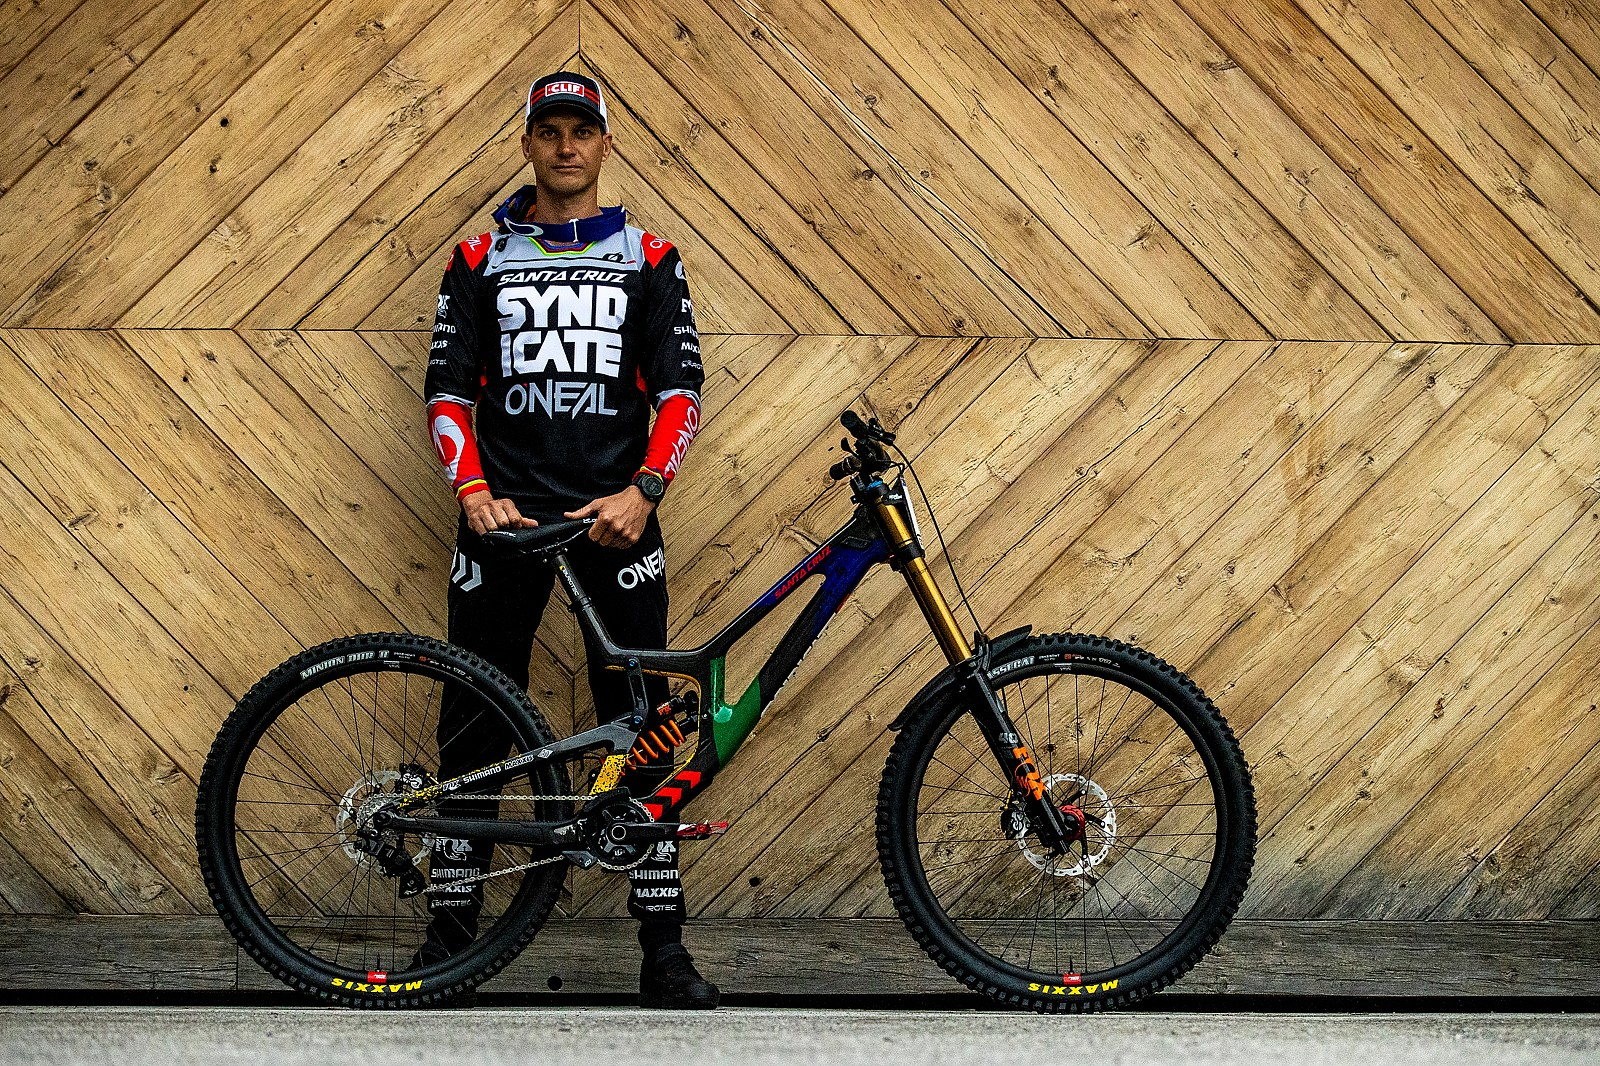 Greg and His V10 - PIT BITS - Leogang World Cup Downhill 2021 - Mountain Biking Pictures - Vital MTB